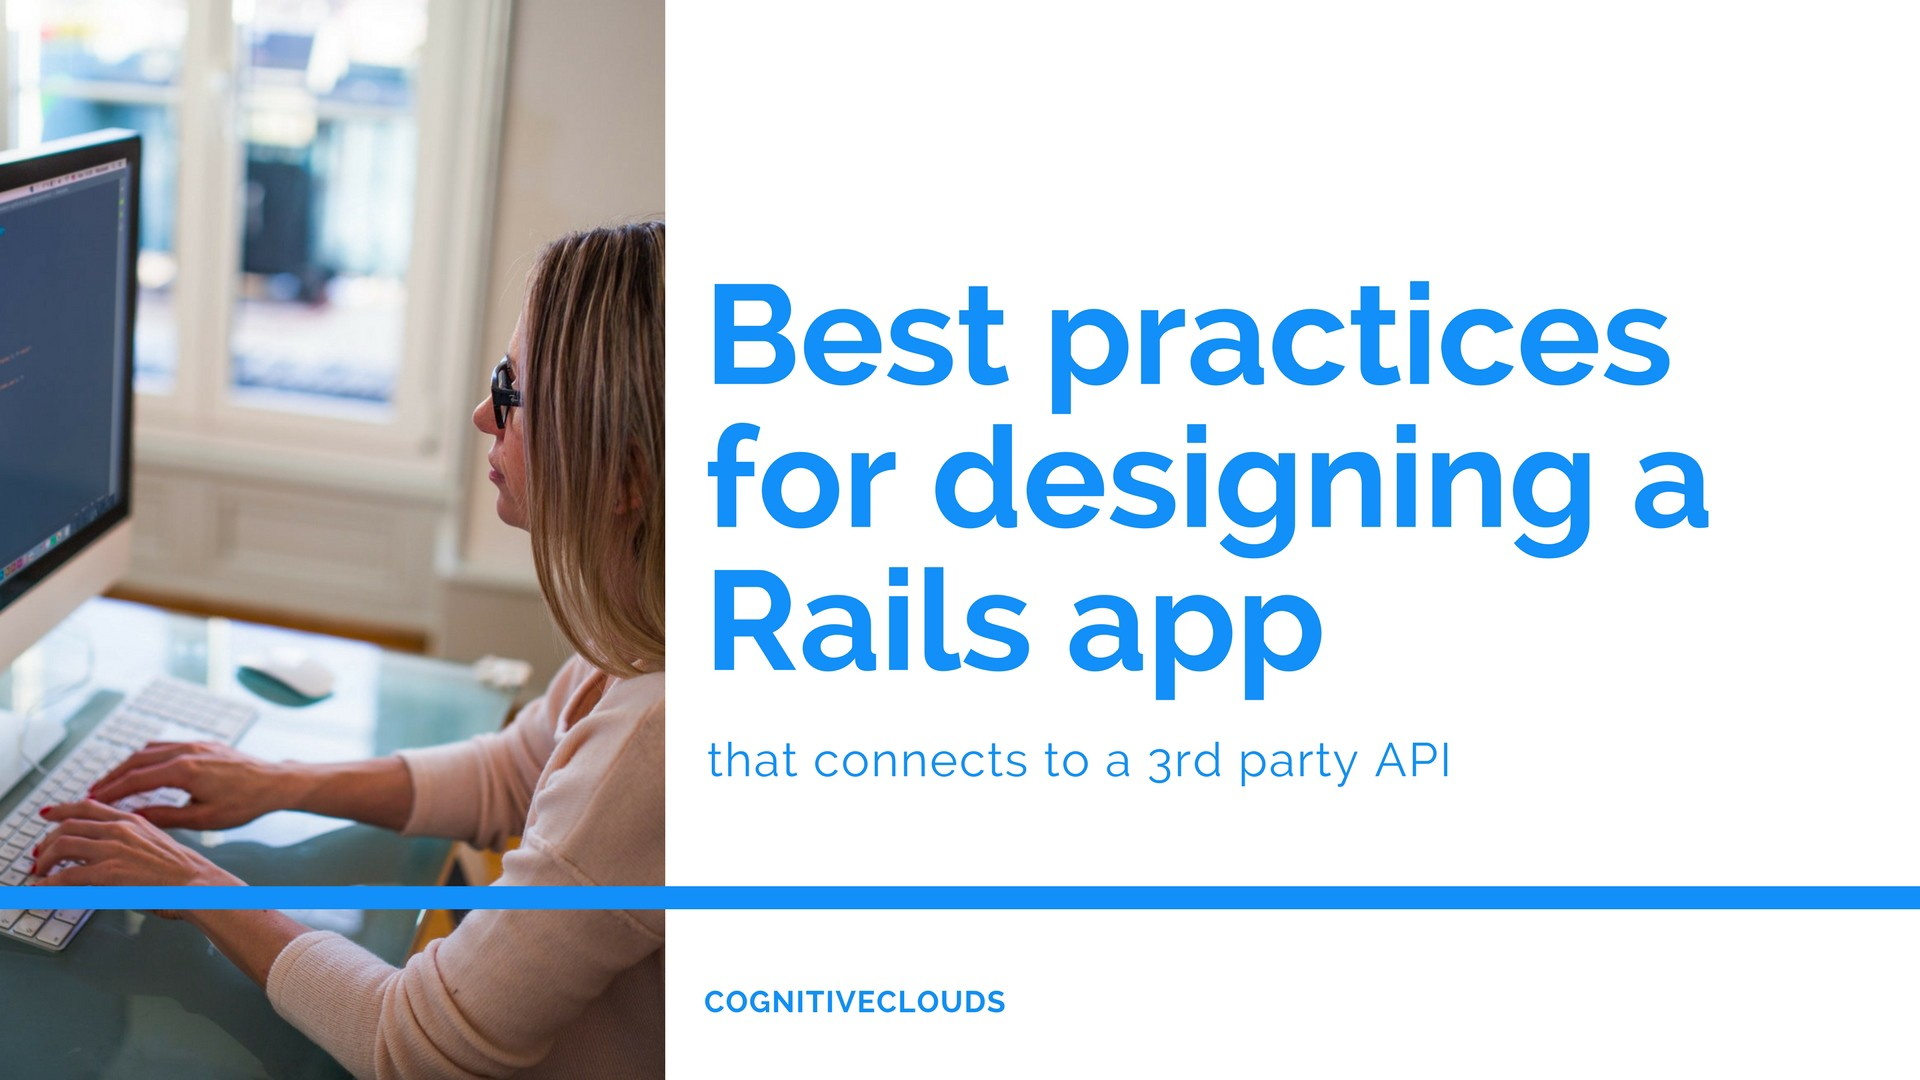 Best practices for designing a Rails app that connects to a 3rd